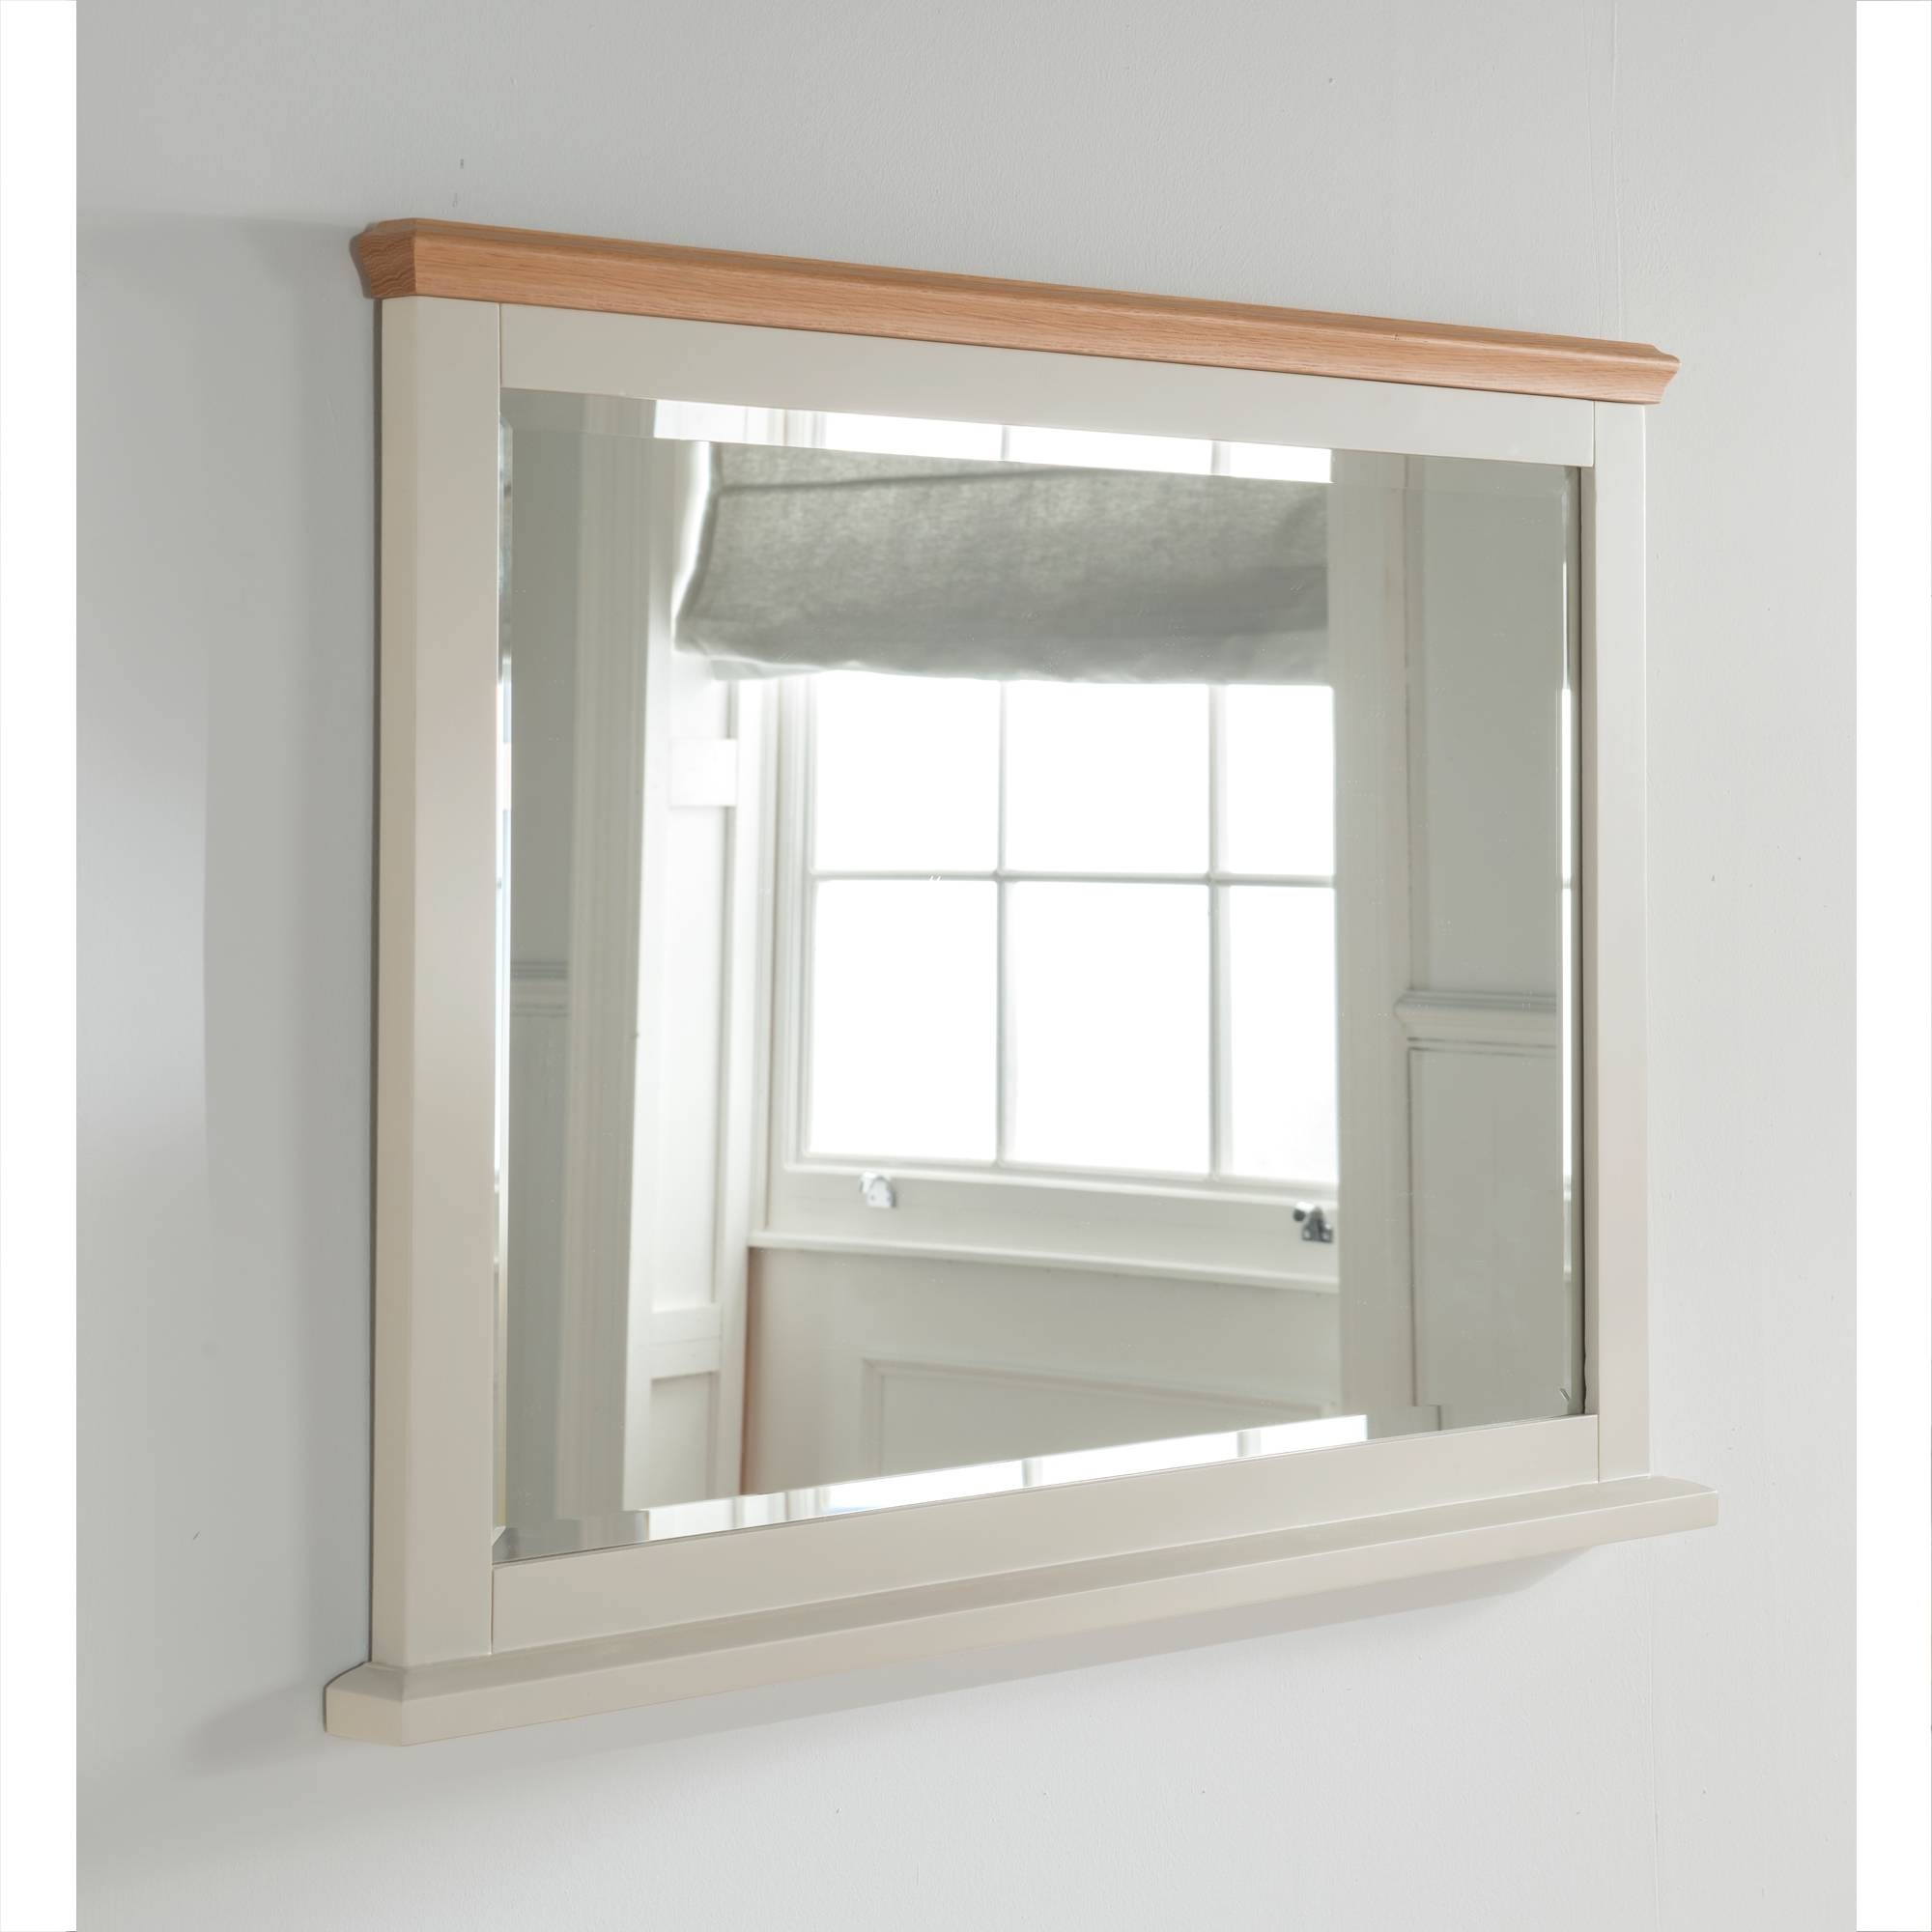 Remi Shabby Chic Wall Mirror | French Style Mirrors intended for Shabby Chic Wall Mirrors (Image 9 of 15)